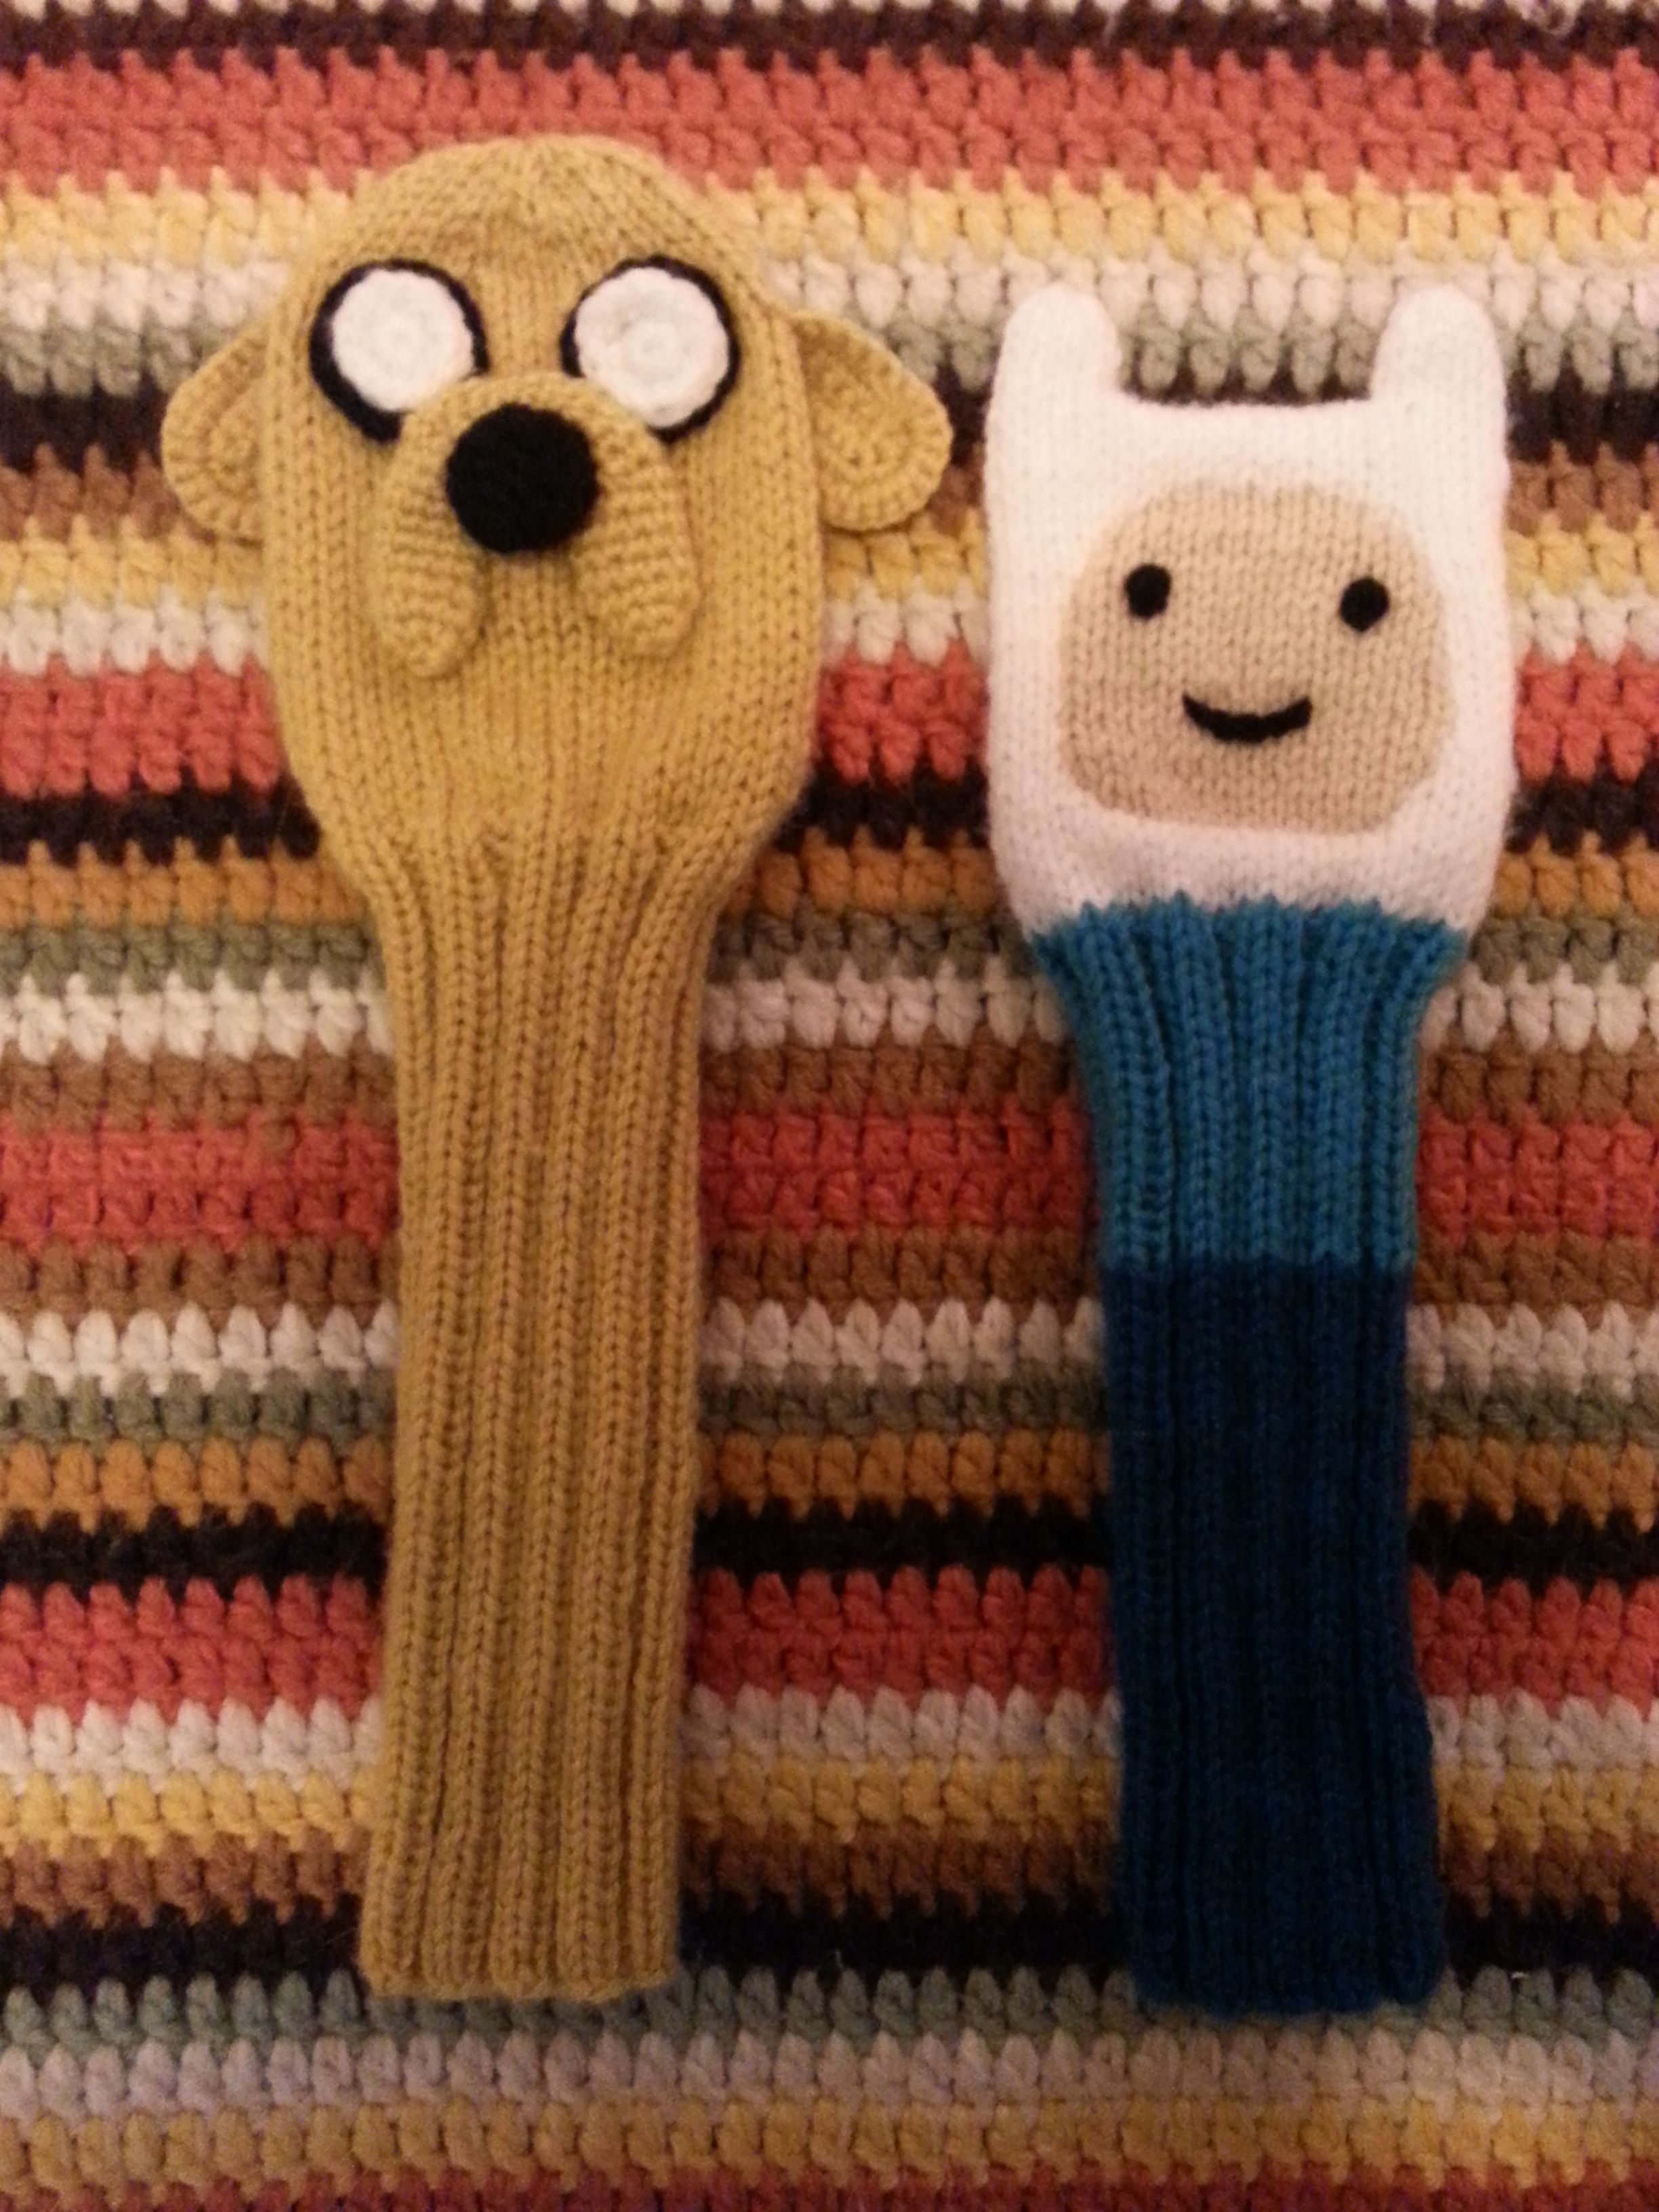 Adventure time finn and jake knitted golf club covers adventure time finn and jake knitted golf club covers bankloansurffo Gallery